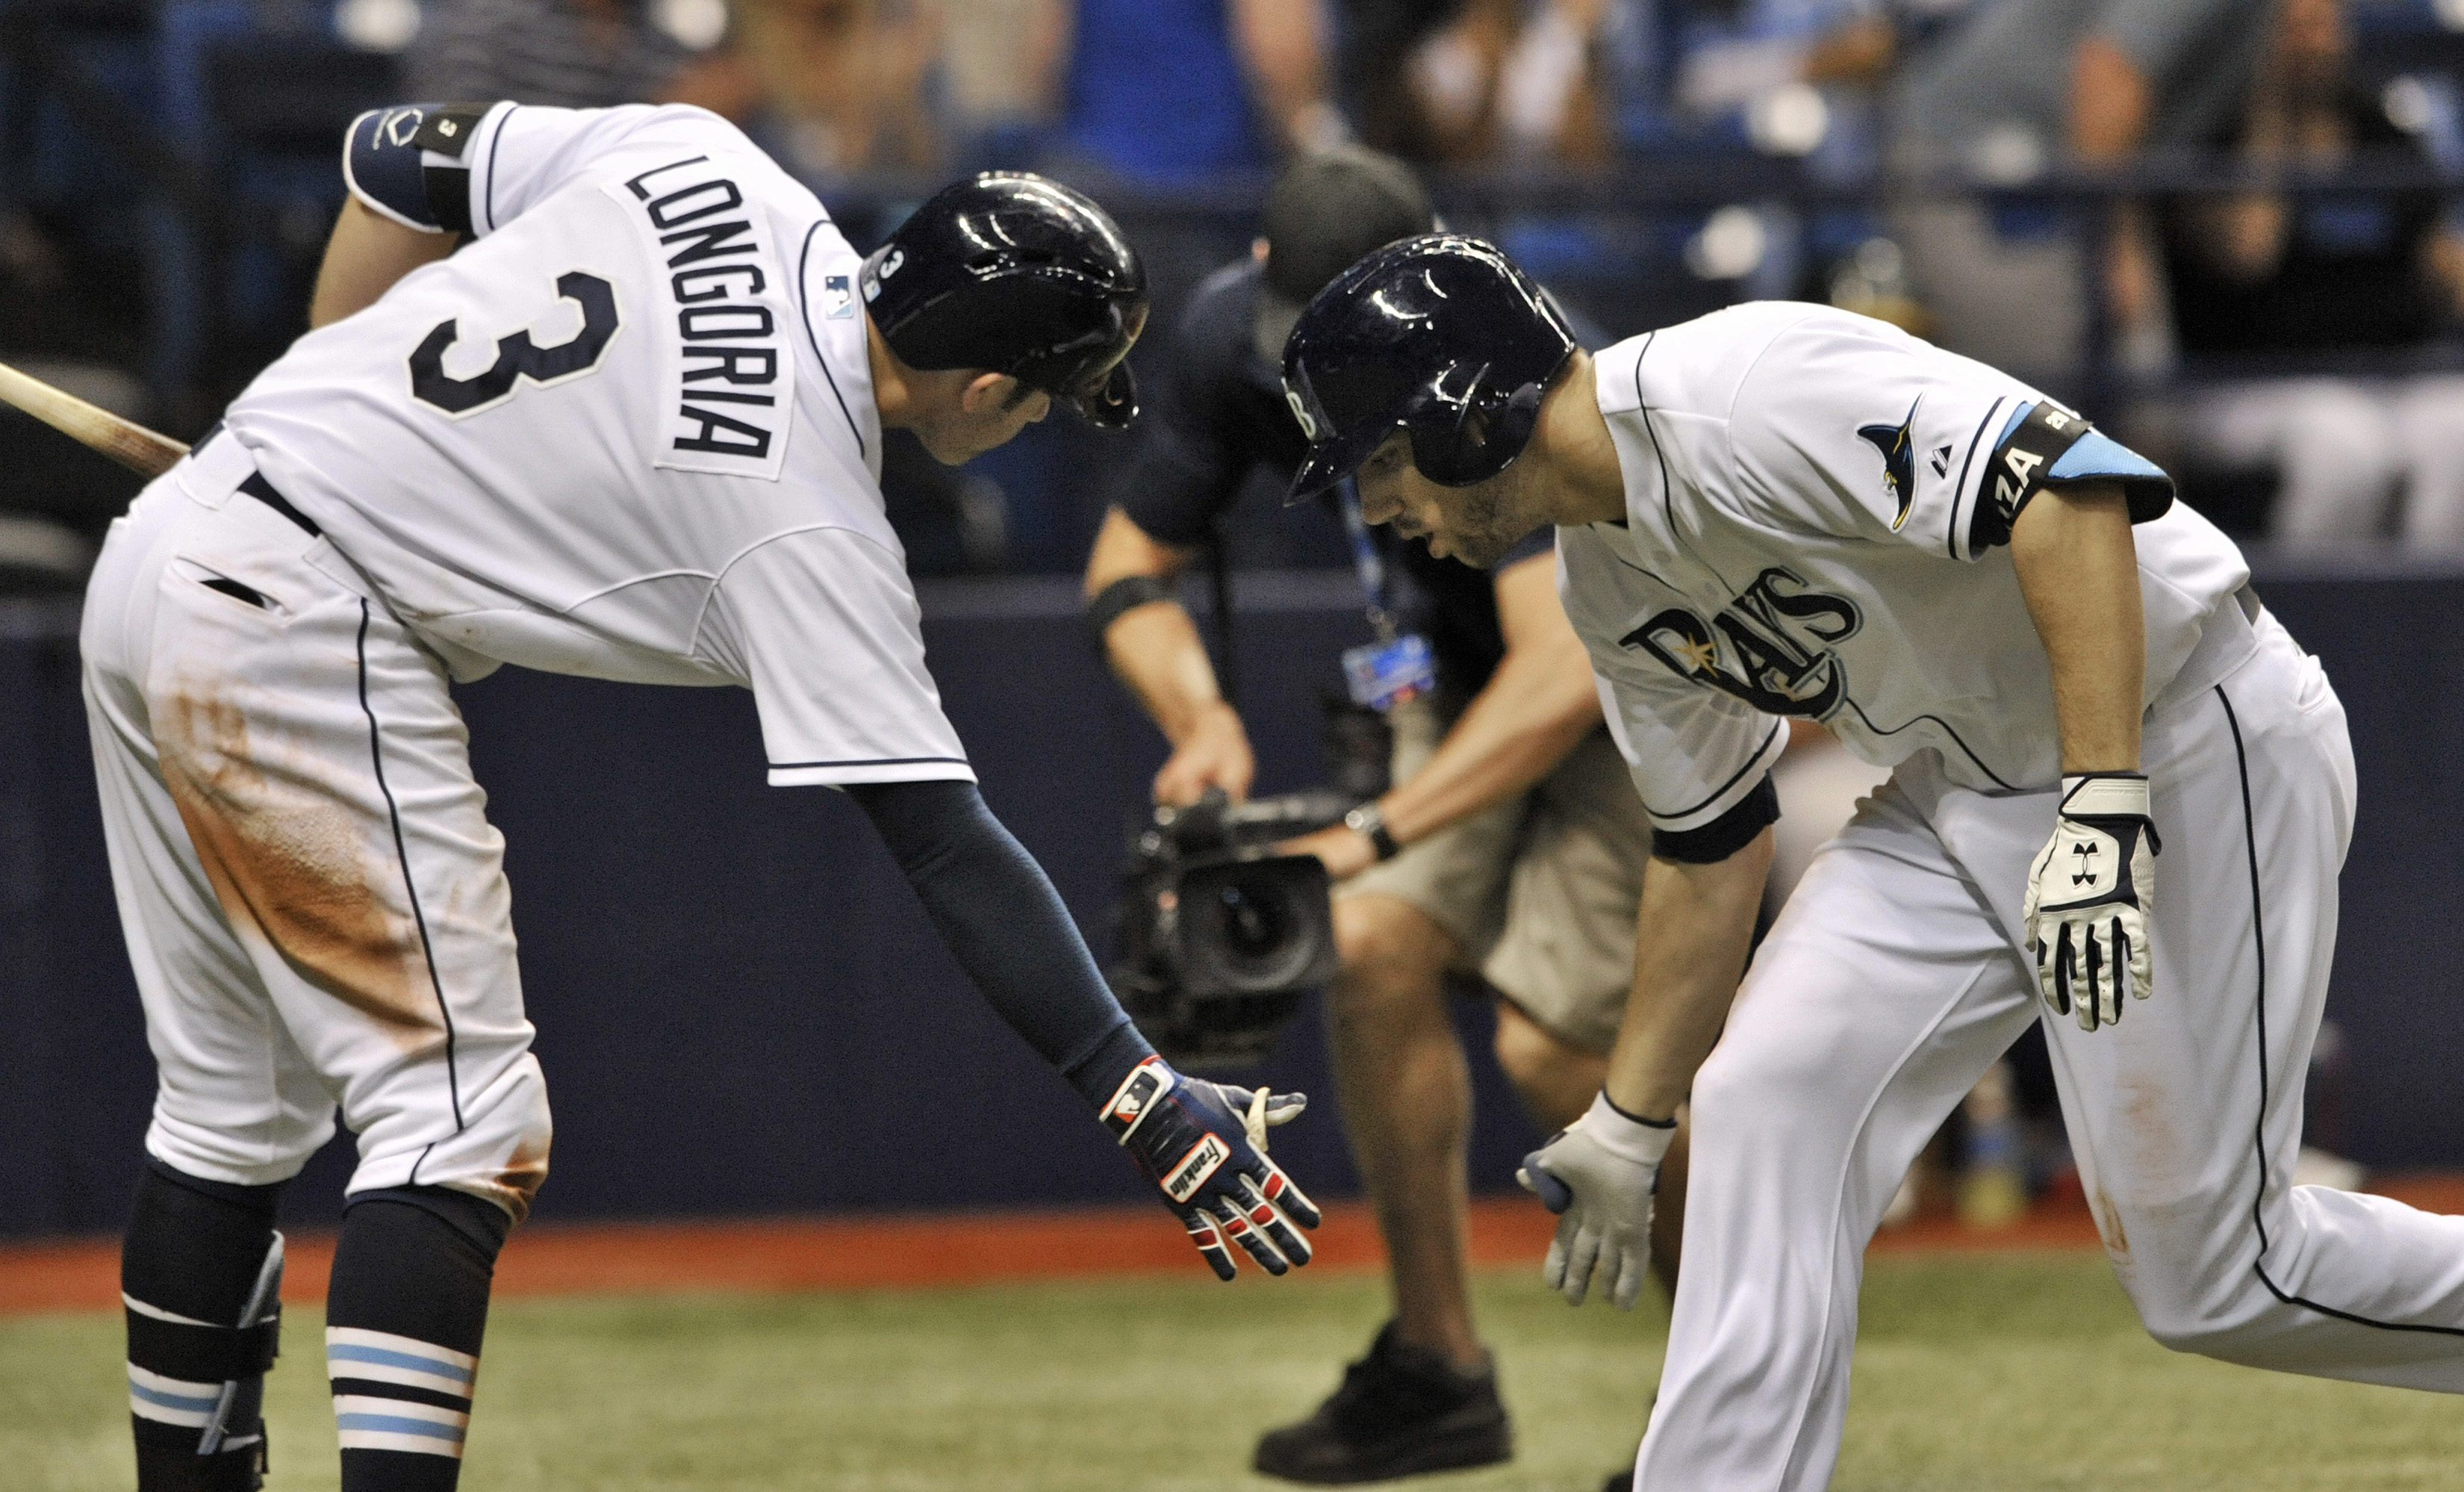 Tampa Bay Rays' on-deck batter Evan Longoria (3) congratulates Steven Souza Jr. after his solo home run to left field off Oakland Athletics reliever Evan Scribner during the seventh inning of a baseball game Friday, May 22, 2015, in St. Petersburg, Fla. (